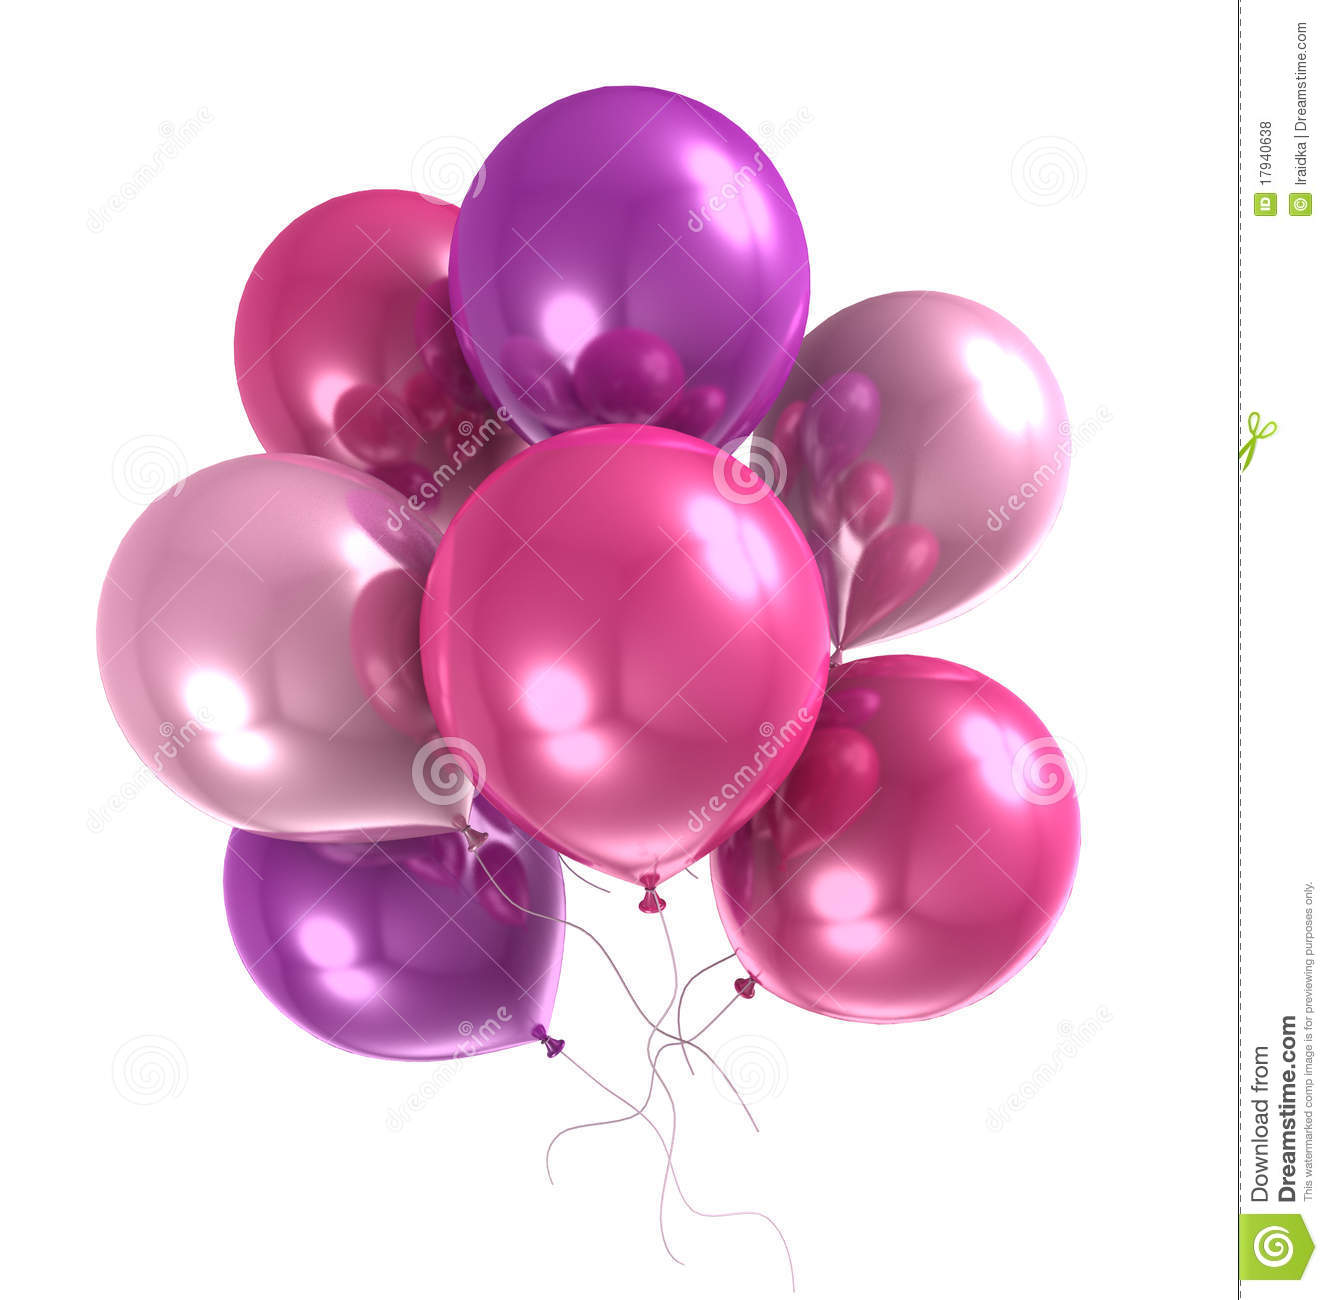 Balloon Centerpieces Without Helium